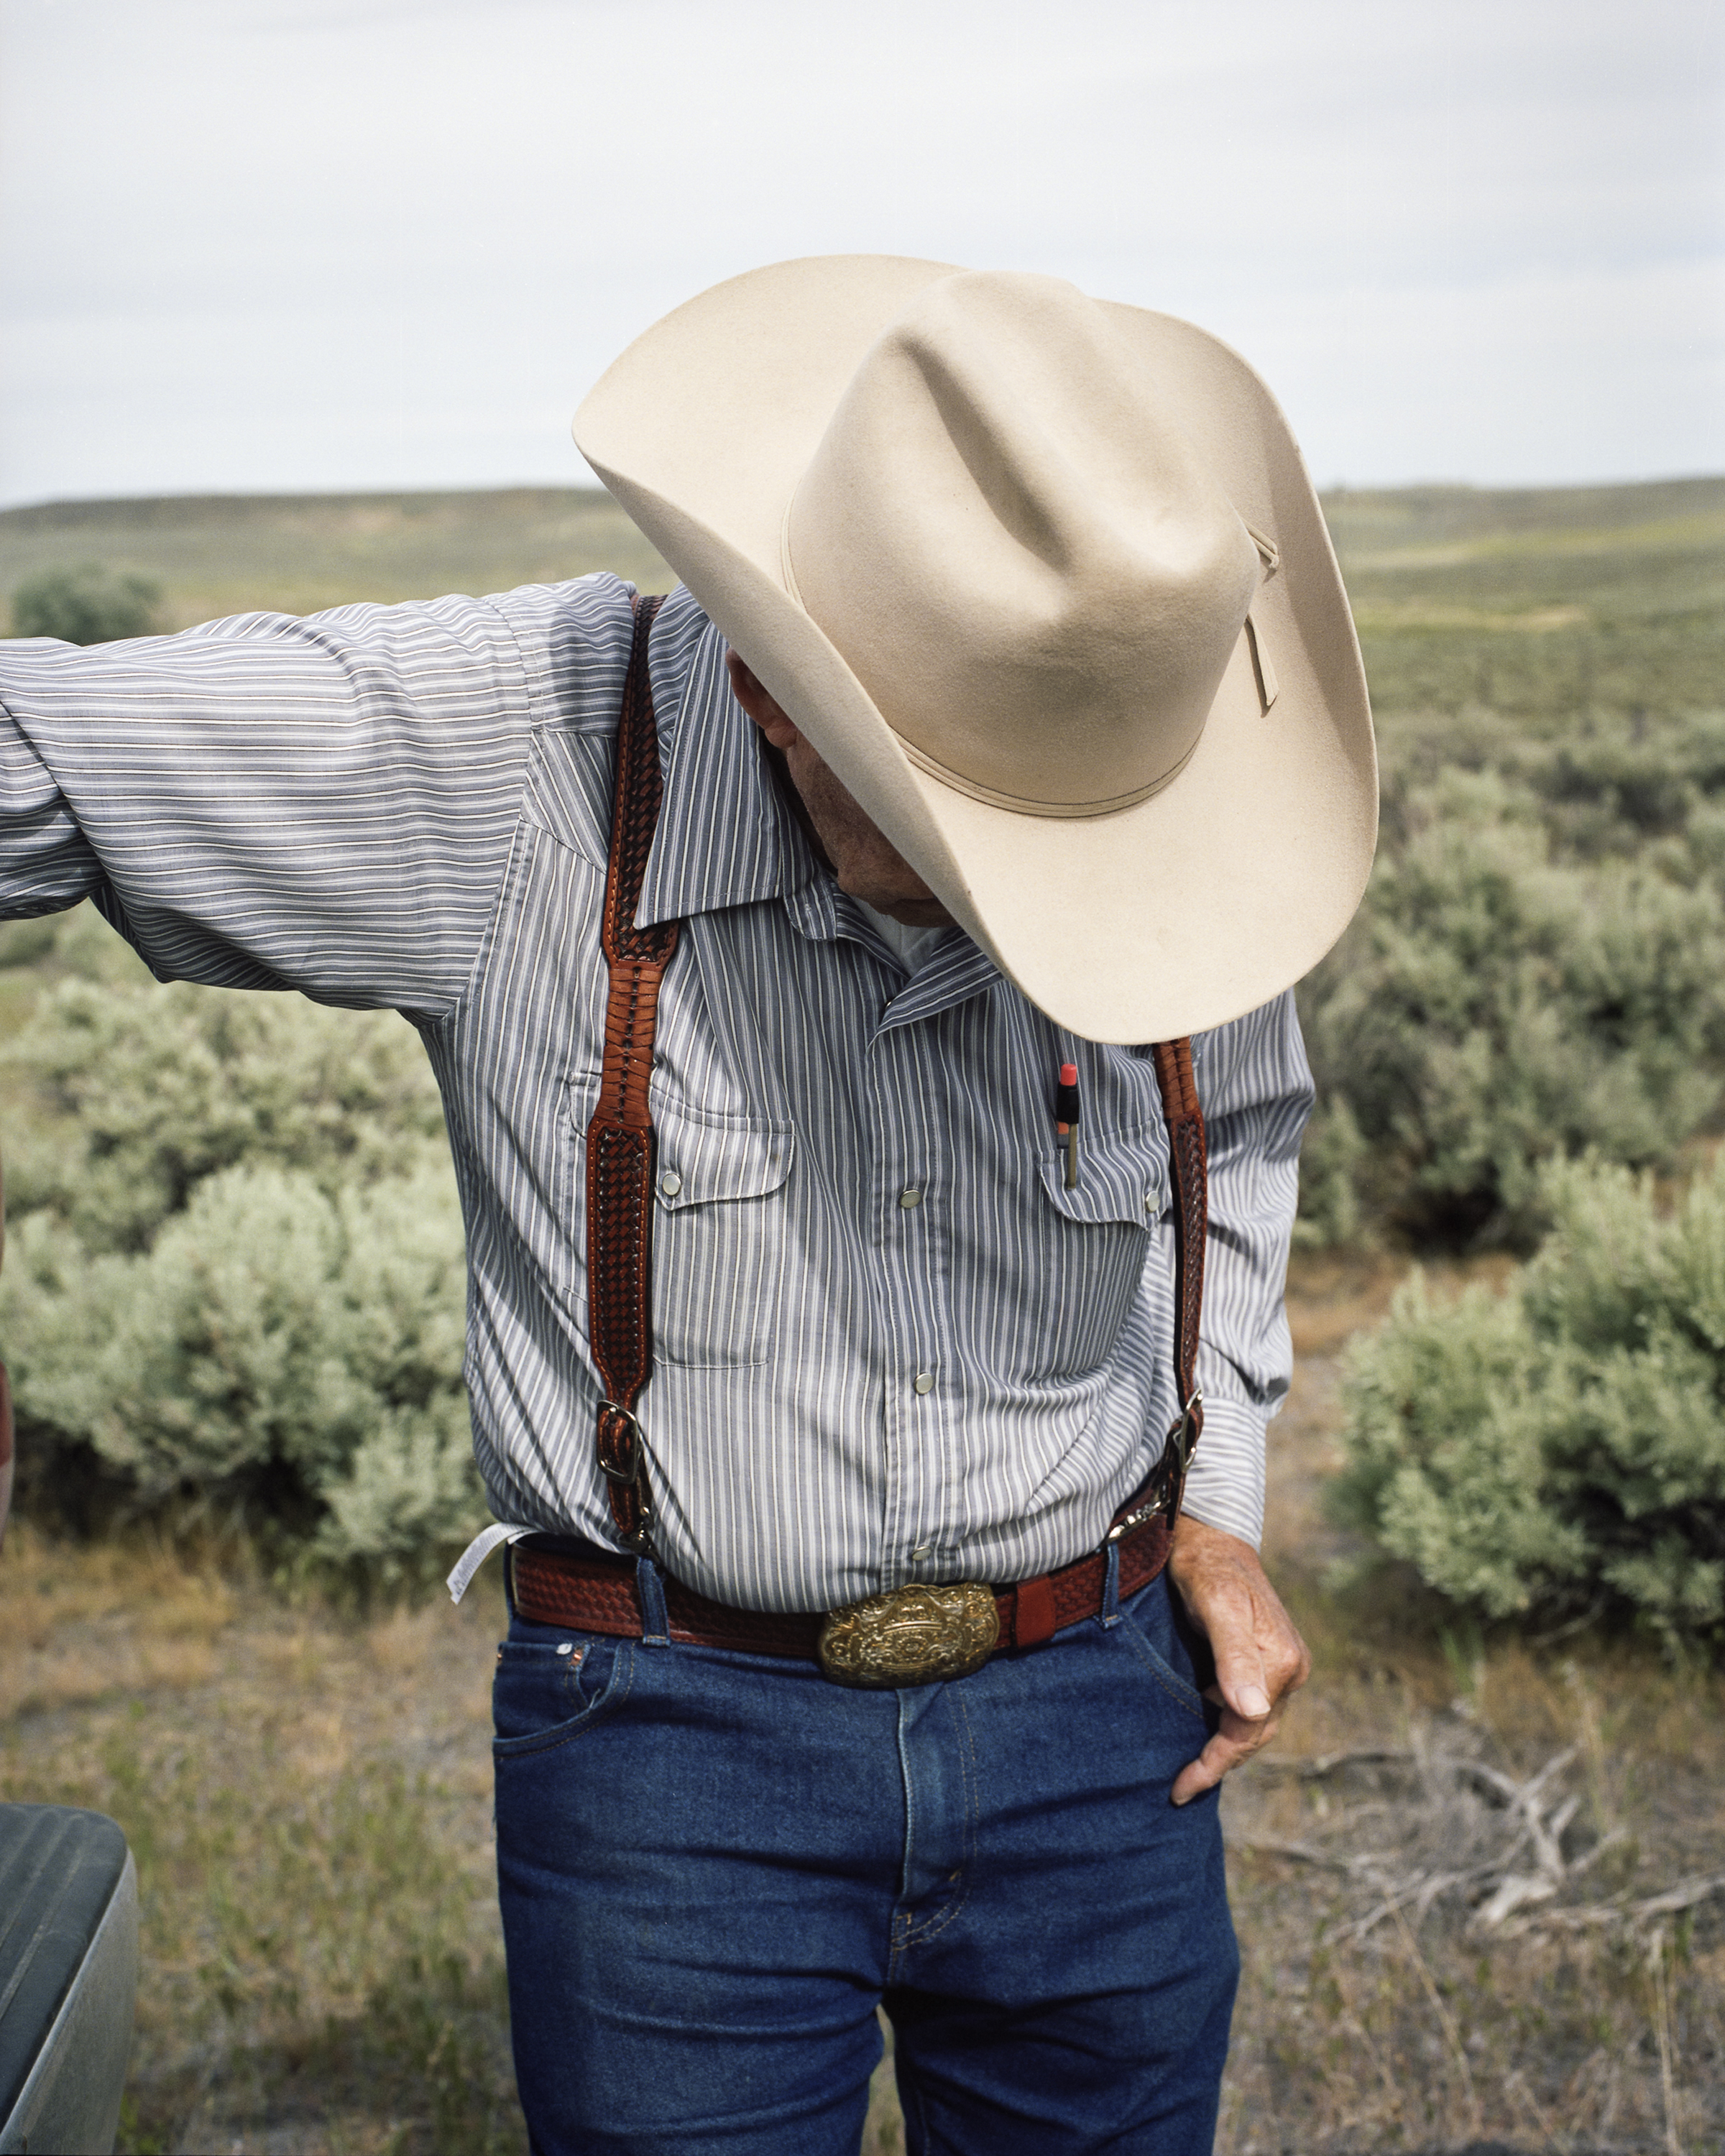 A man in a cowboy hat looking downwards.